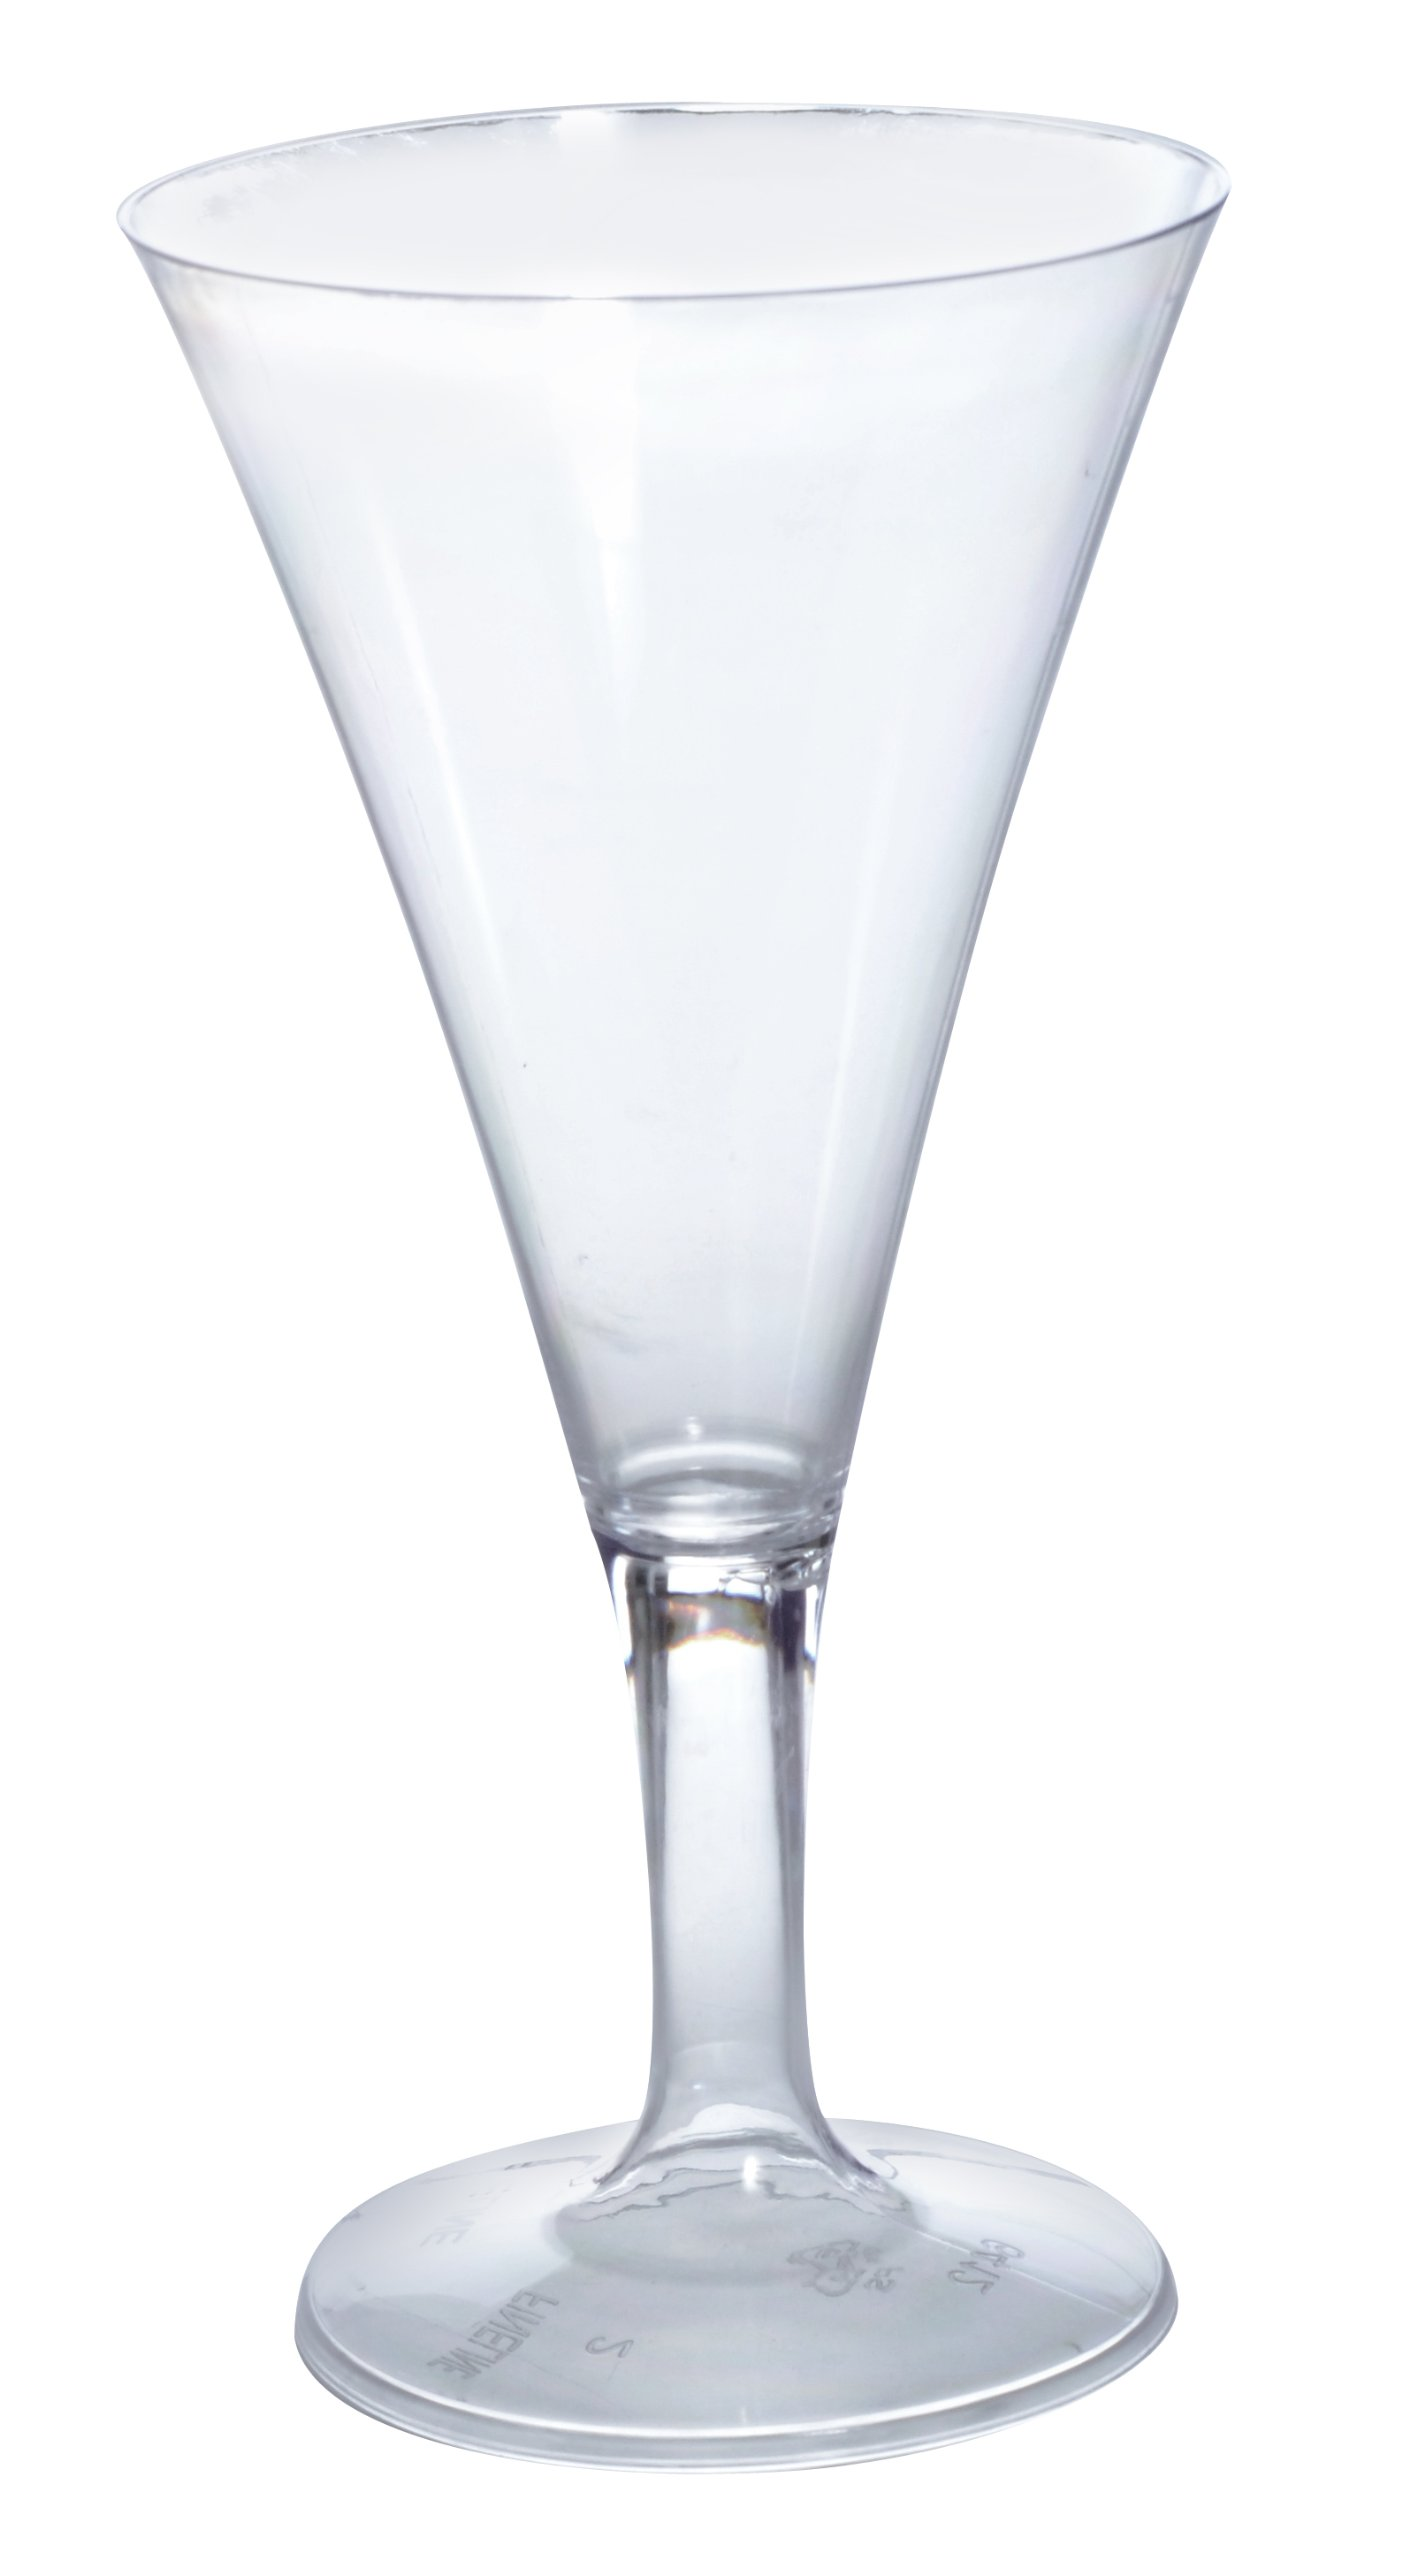 Fineline Settings Tiny Temptations Clear One Piece 2 Oz. Tiny Champagne Glass 96 Pieces by Tiny Temptations